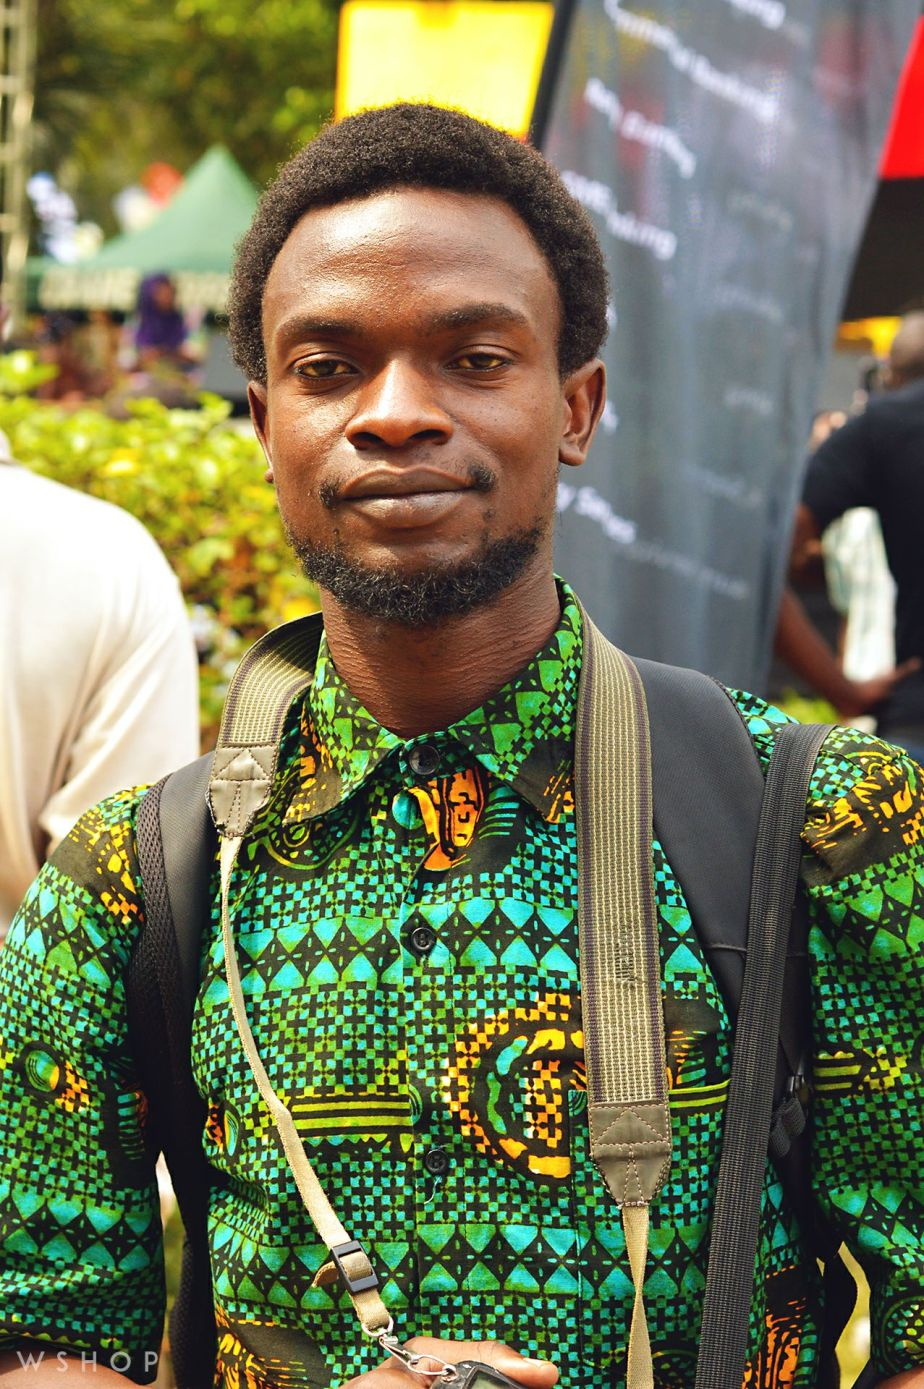 256faces: Katumba Badru